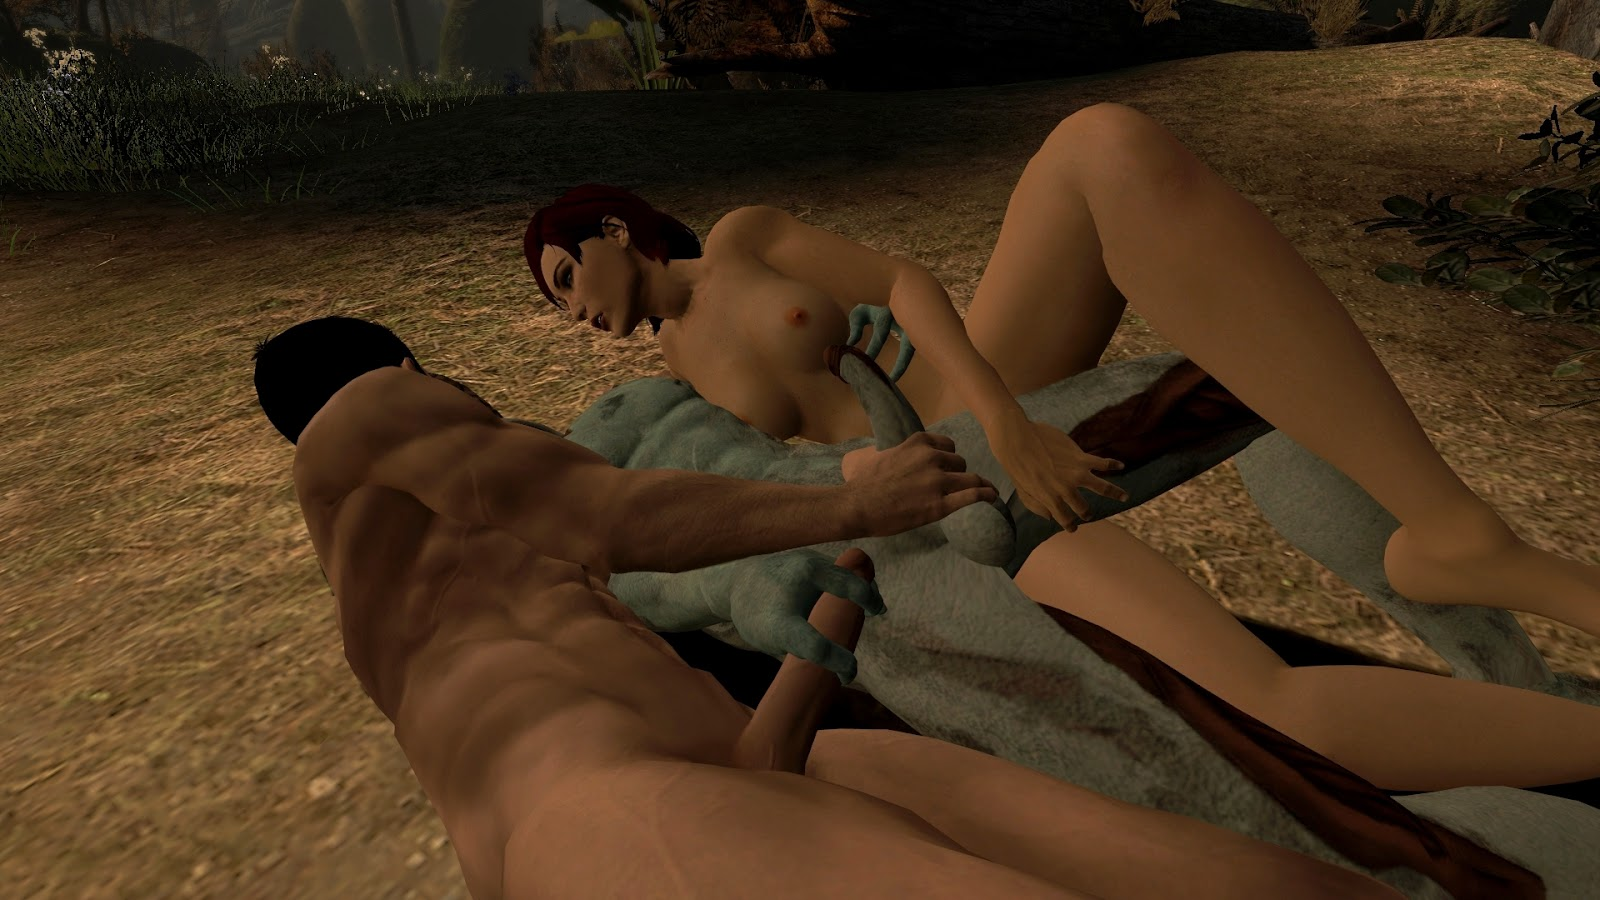 Xxx world warcraft in sexy pictures